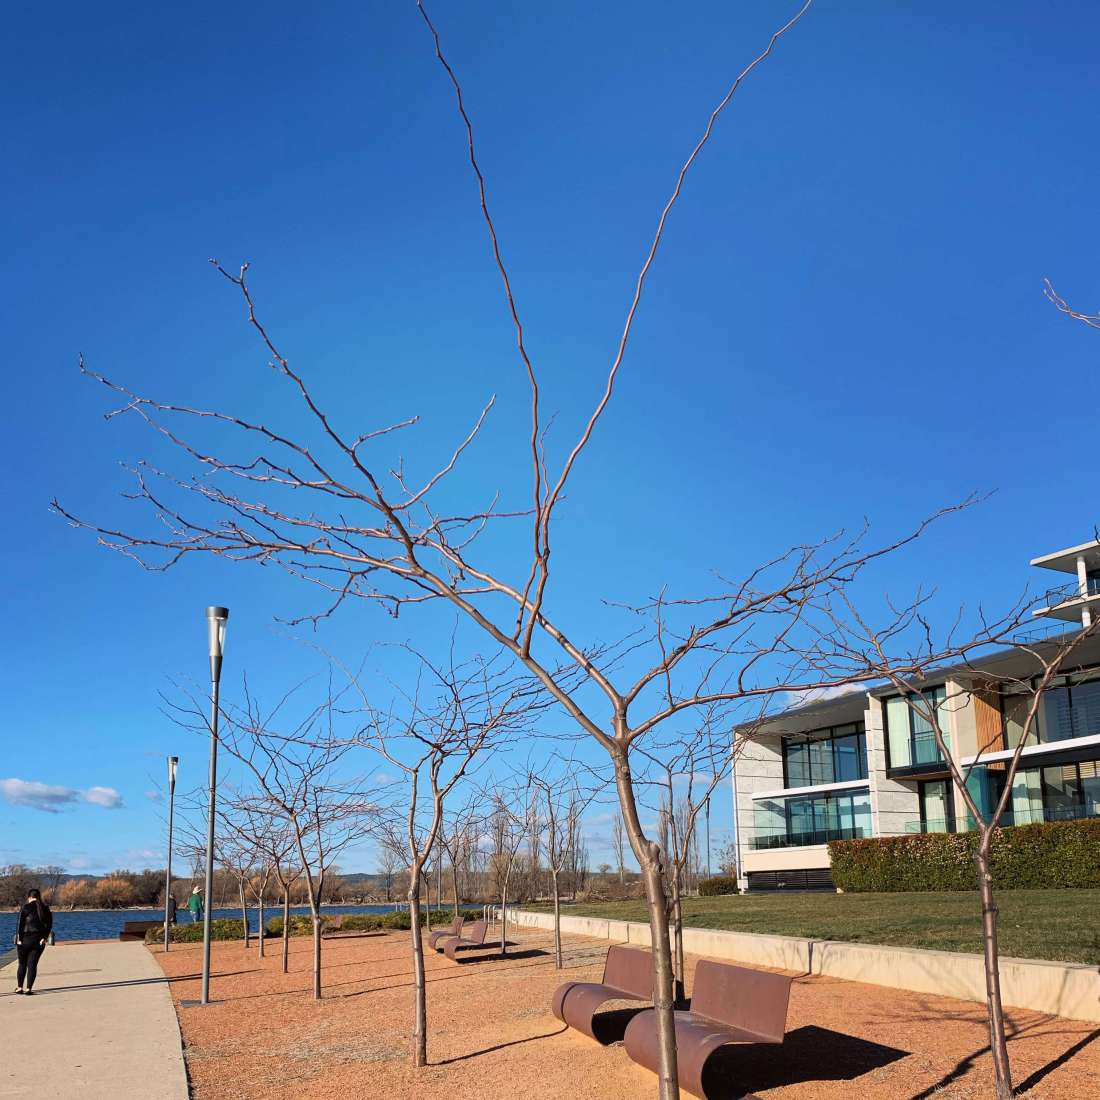 Trees at Trevillian Quay, Canberra